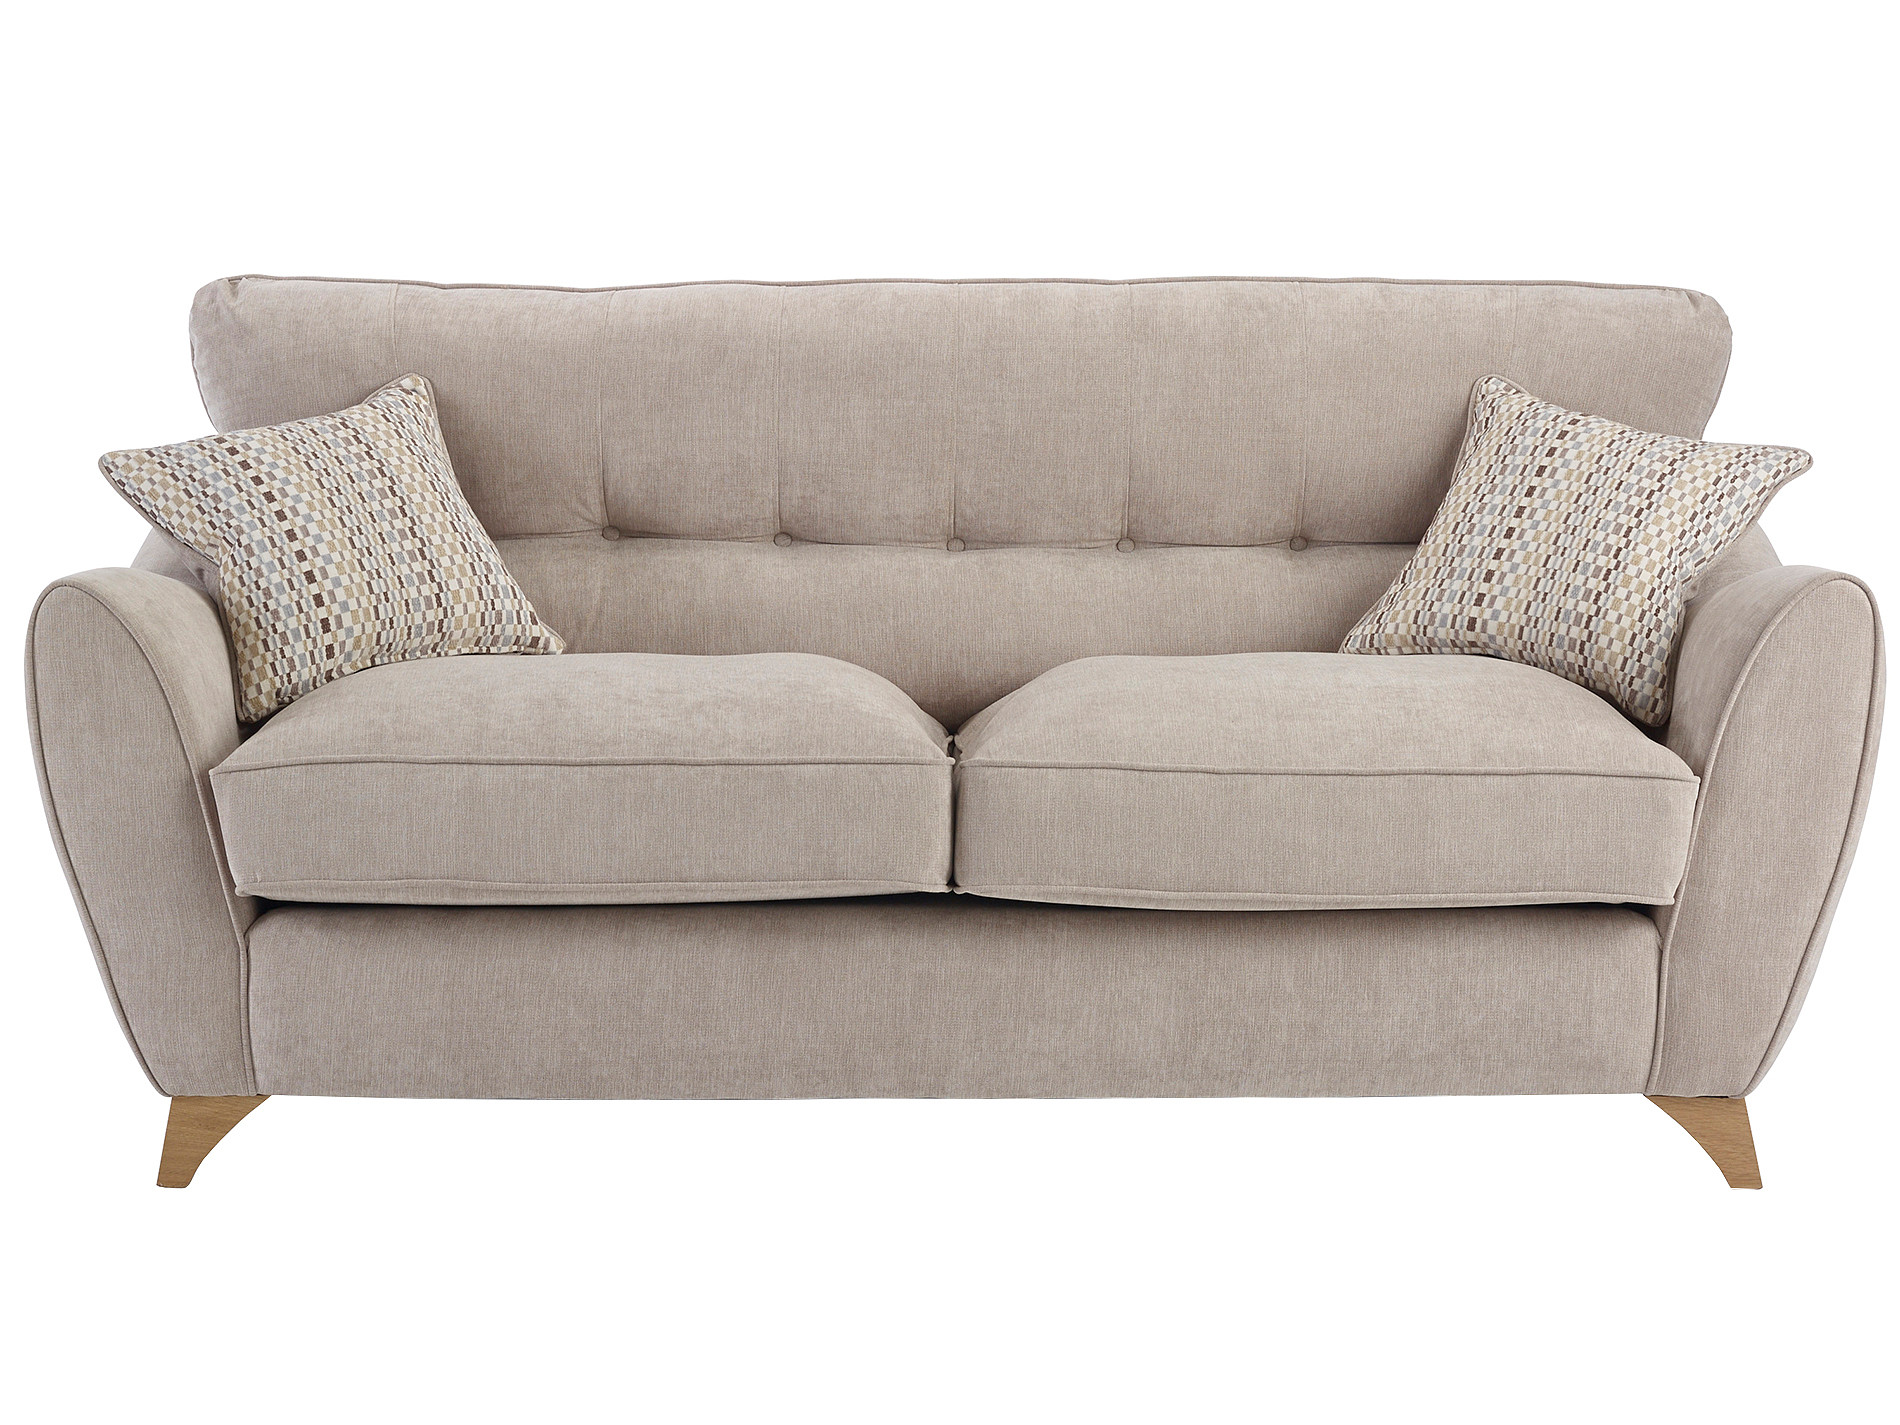 High Back Sectional Sofa High Back Sectional Sofas Furniture Design High Back Sectional Sofas